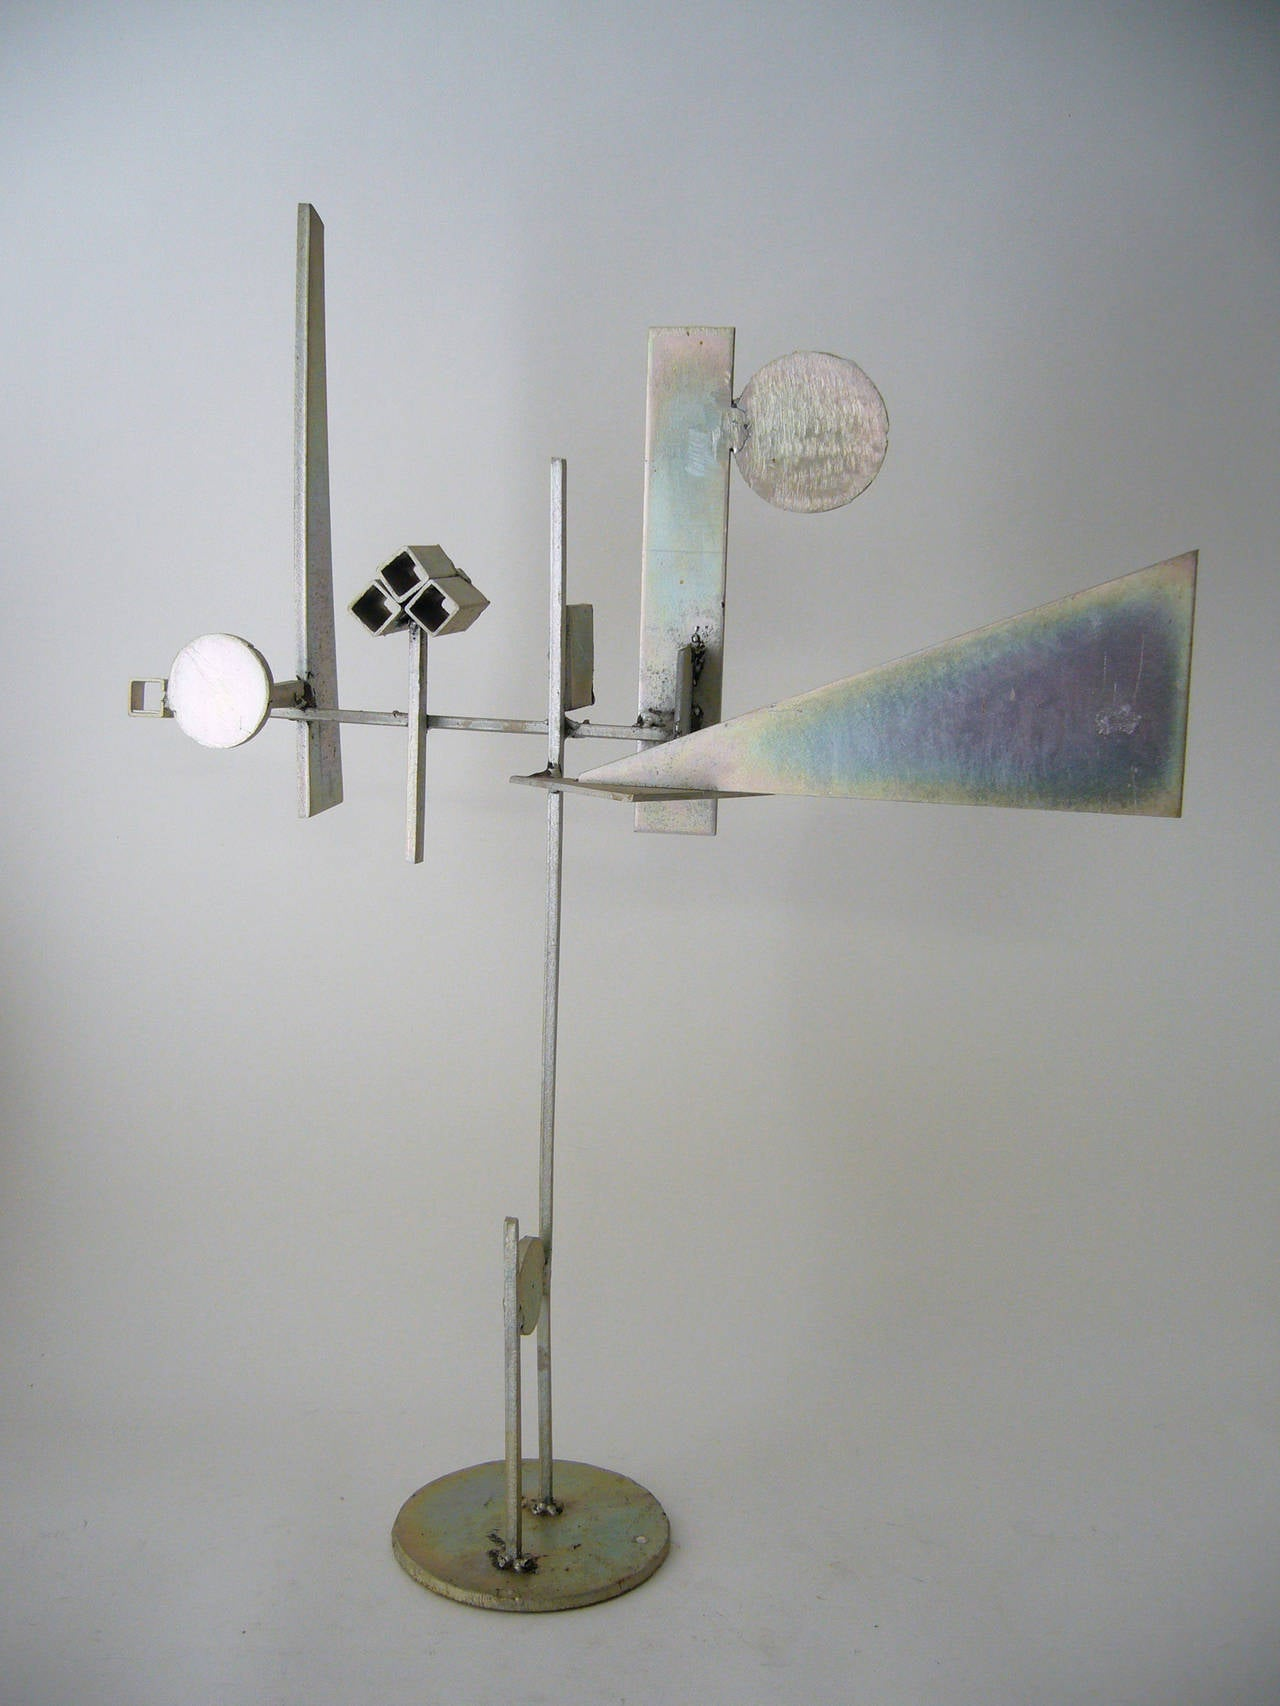 Cadmium plated steel table sculpture by listed artist Paul Kasper of Whittier, California. Sculpture measures 25